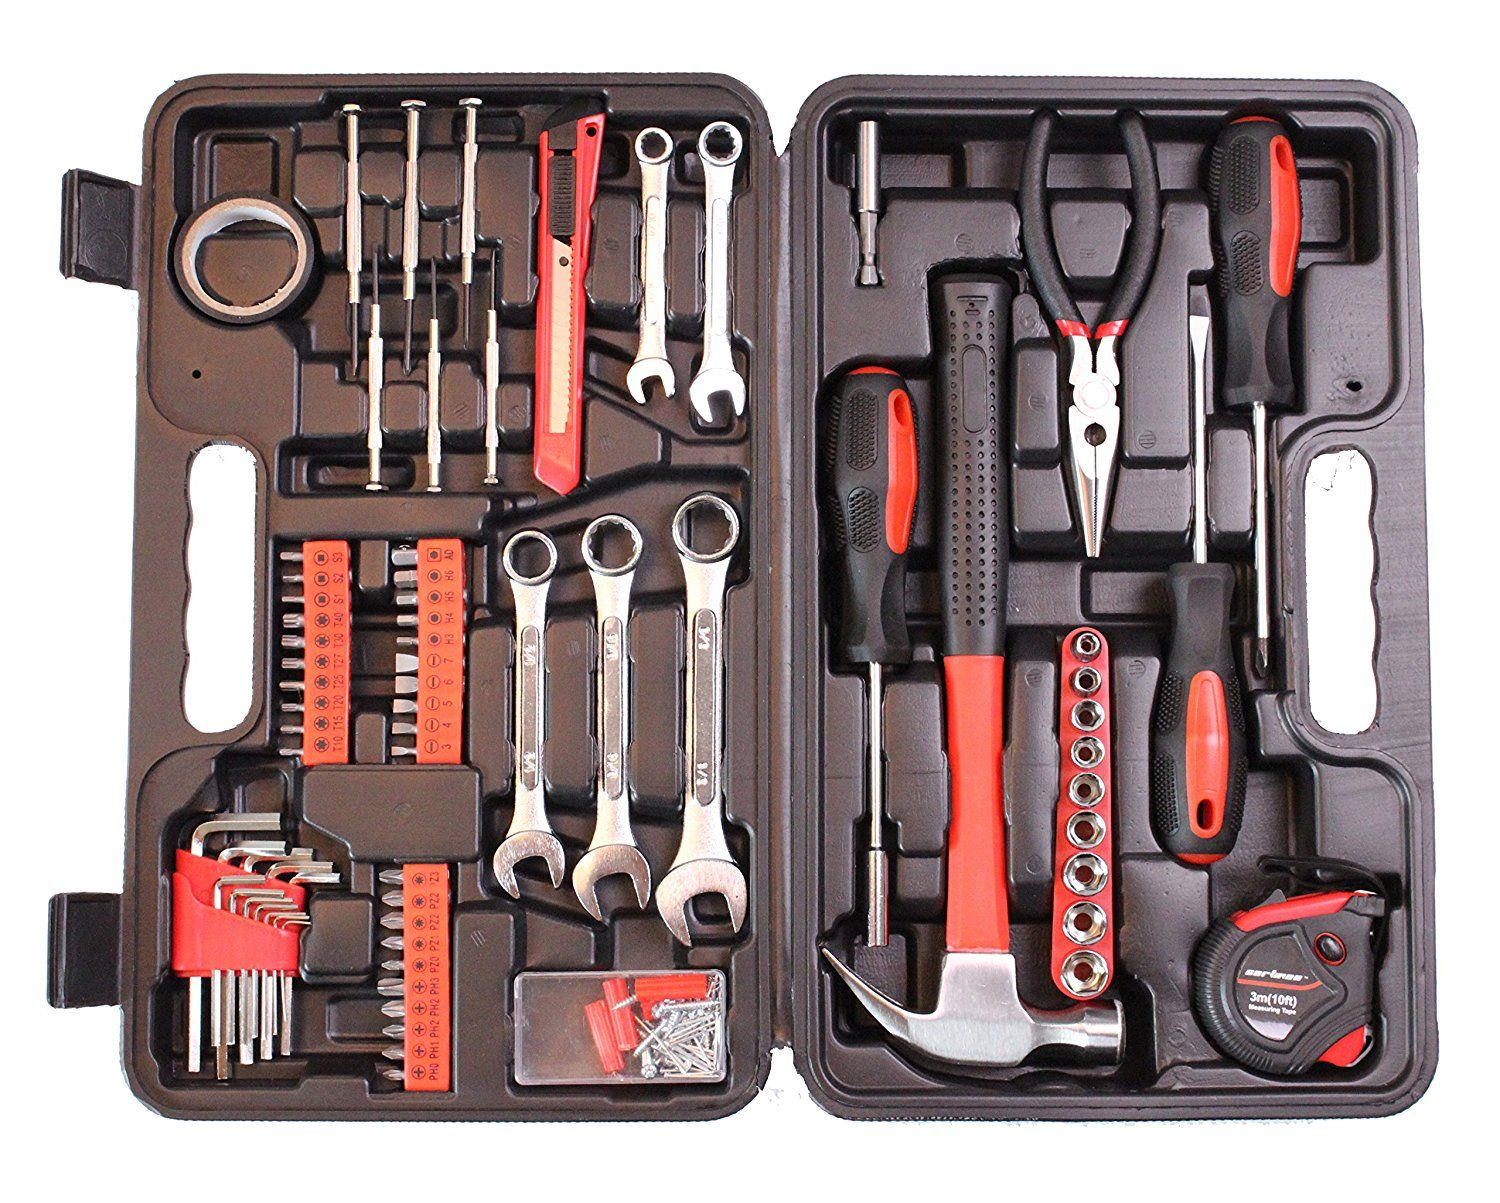 Household Tool Kit Is Merely A Handy Box Which Includes Any Tools You Want To Fix Leakage Or Damage In Your By Yourself Without Completely Relying